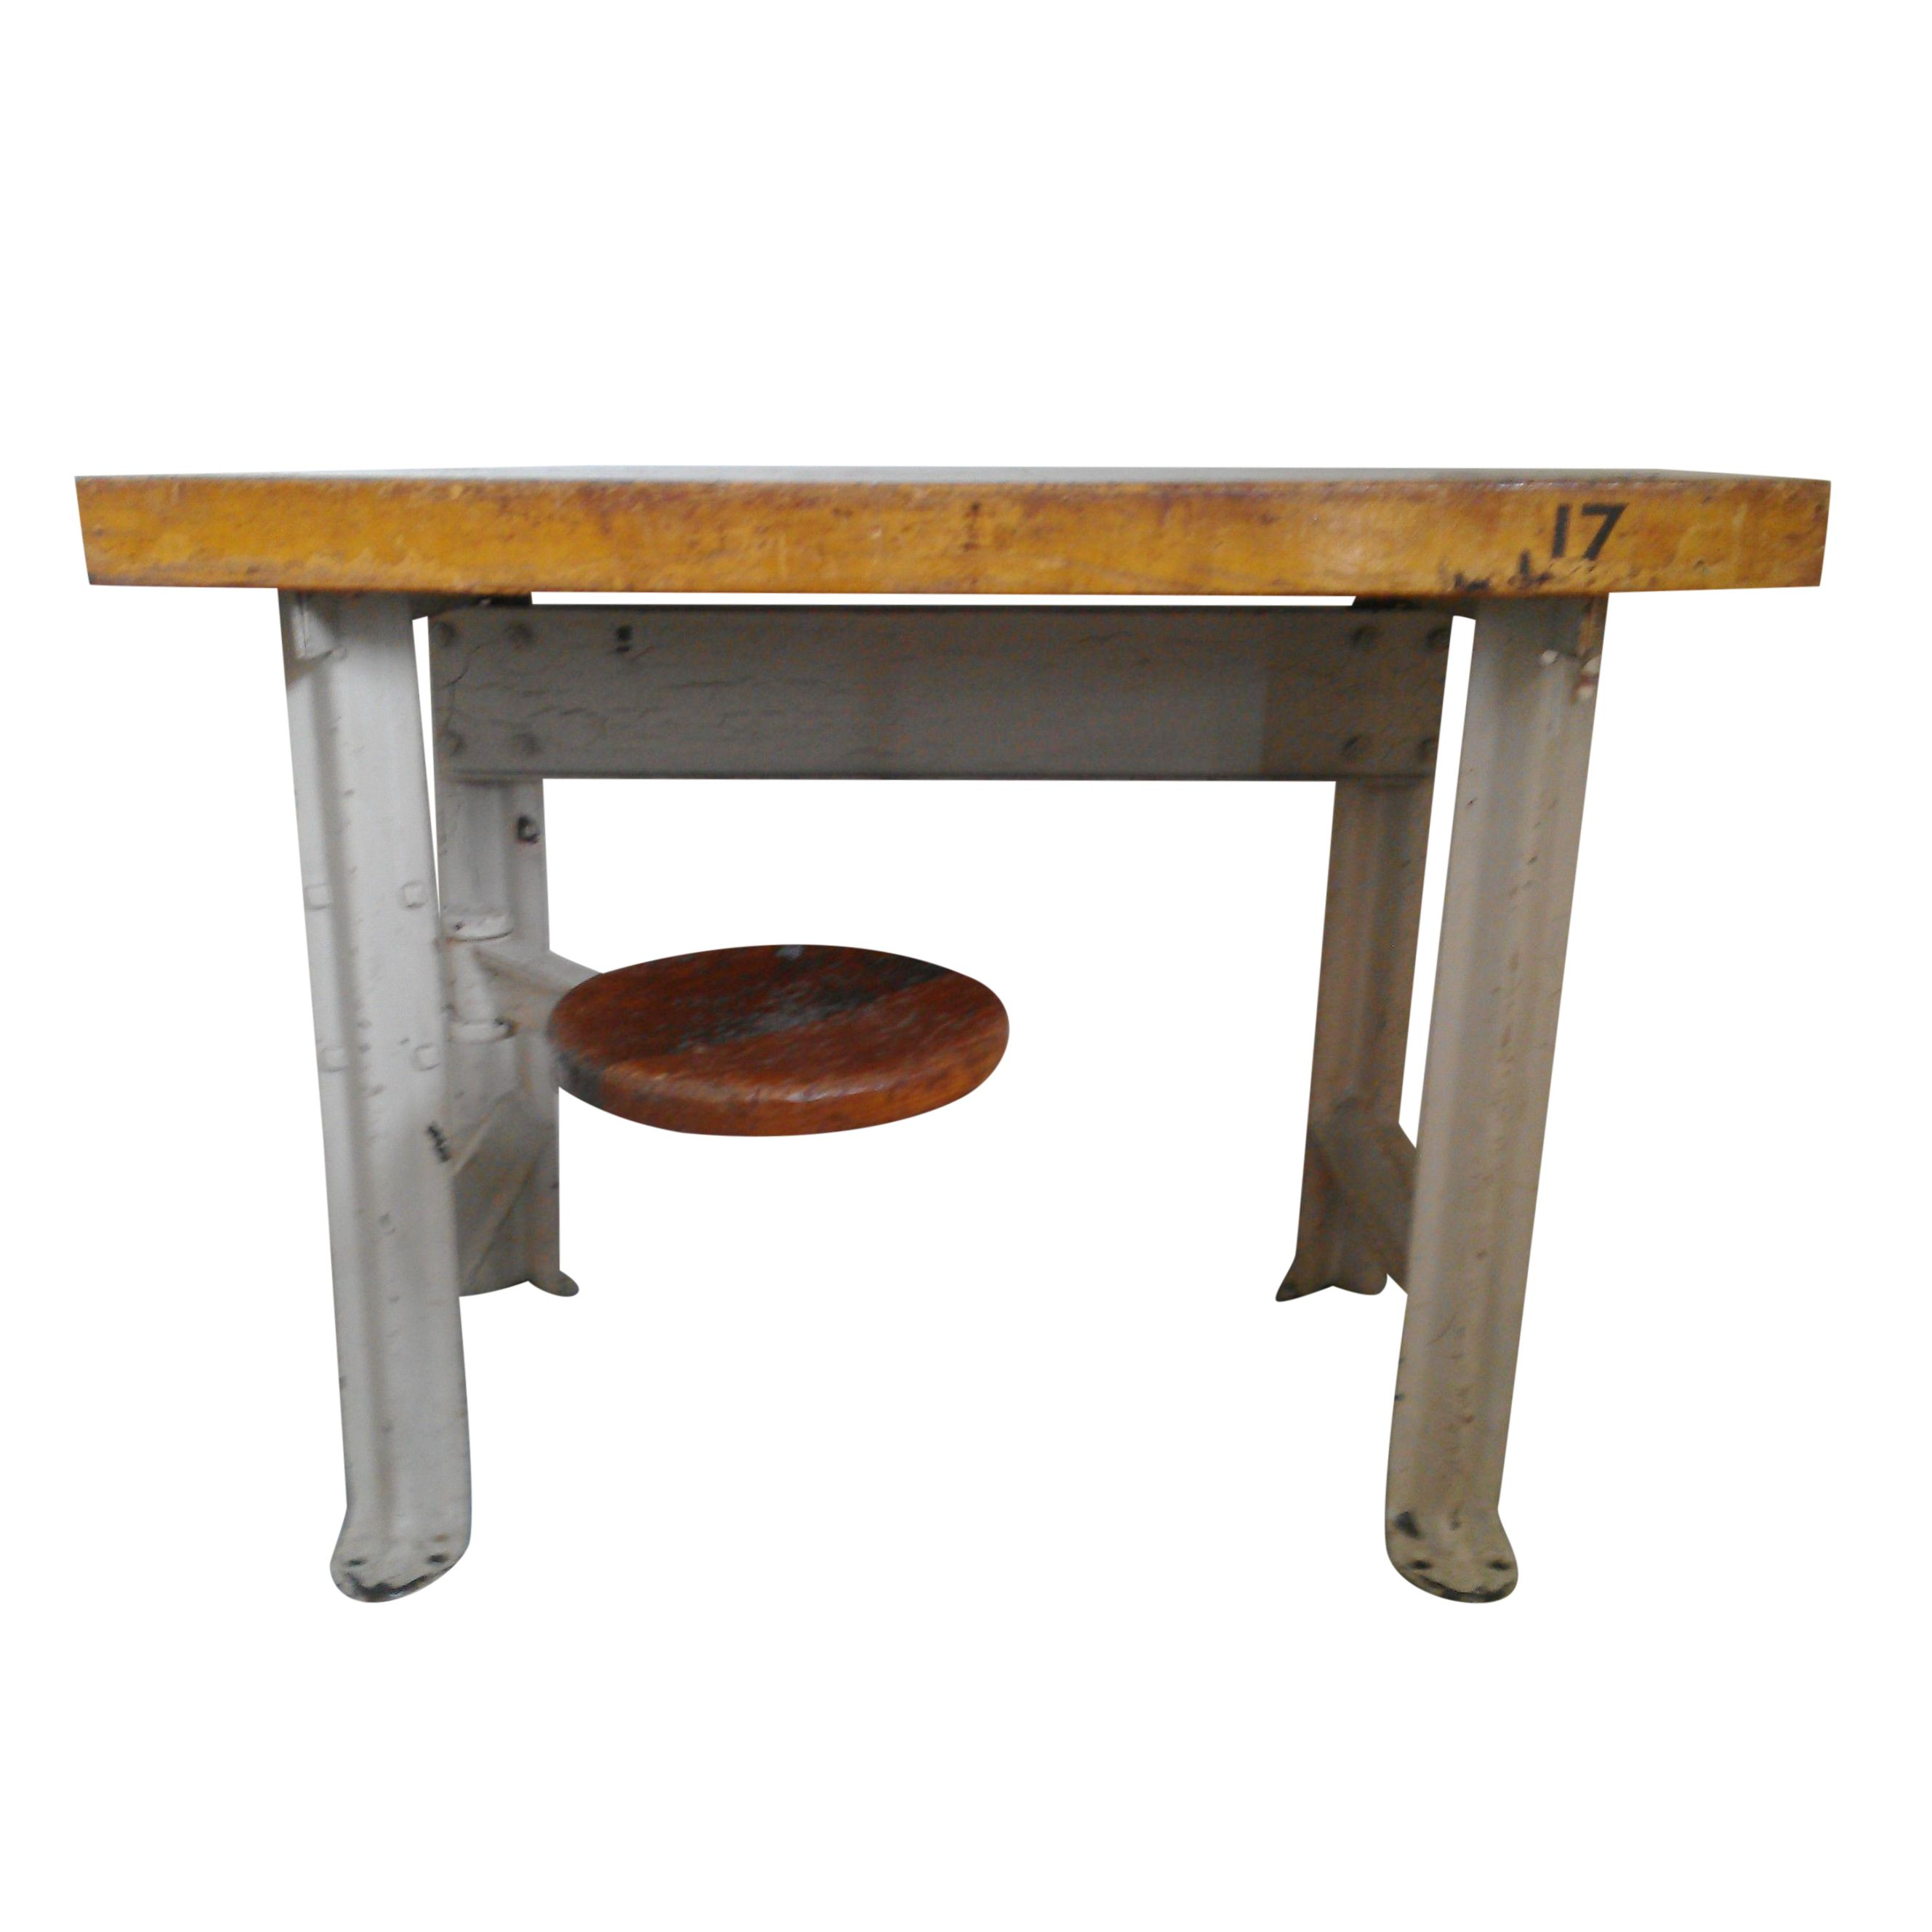 Industrial Table With Swing Out Seat